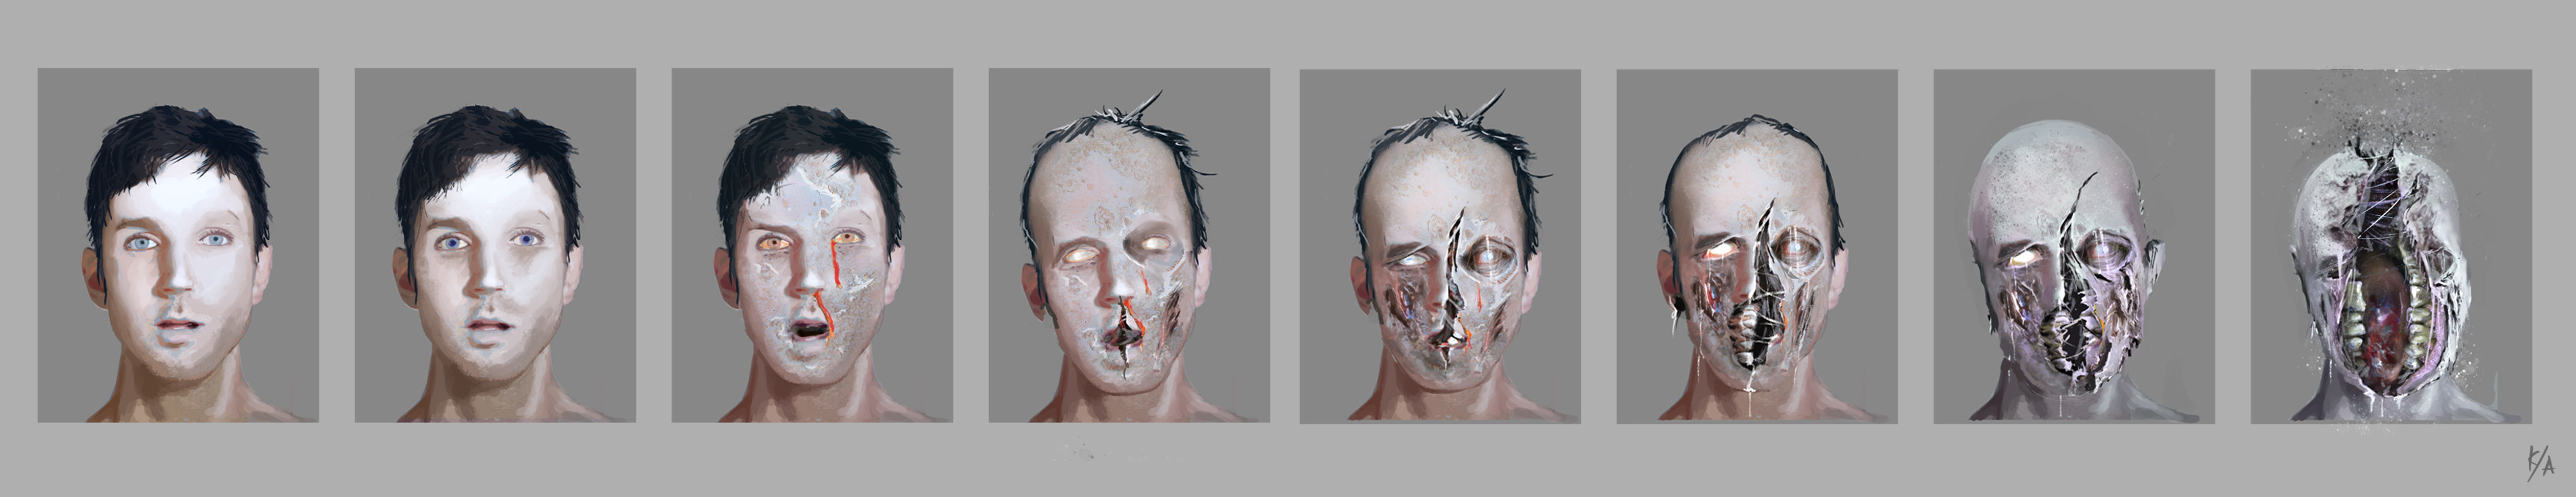 Zombie transformation changes